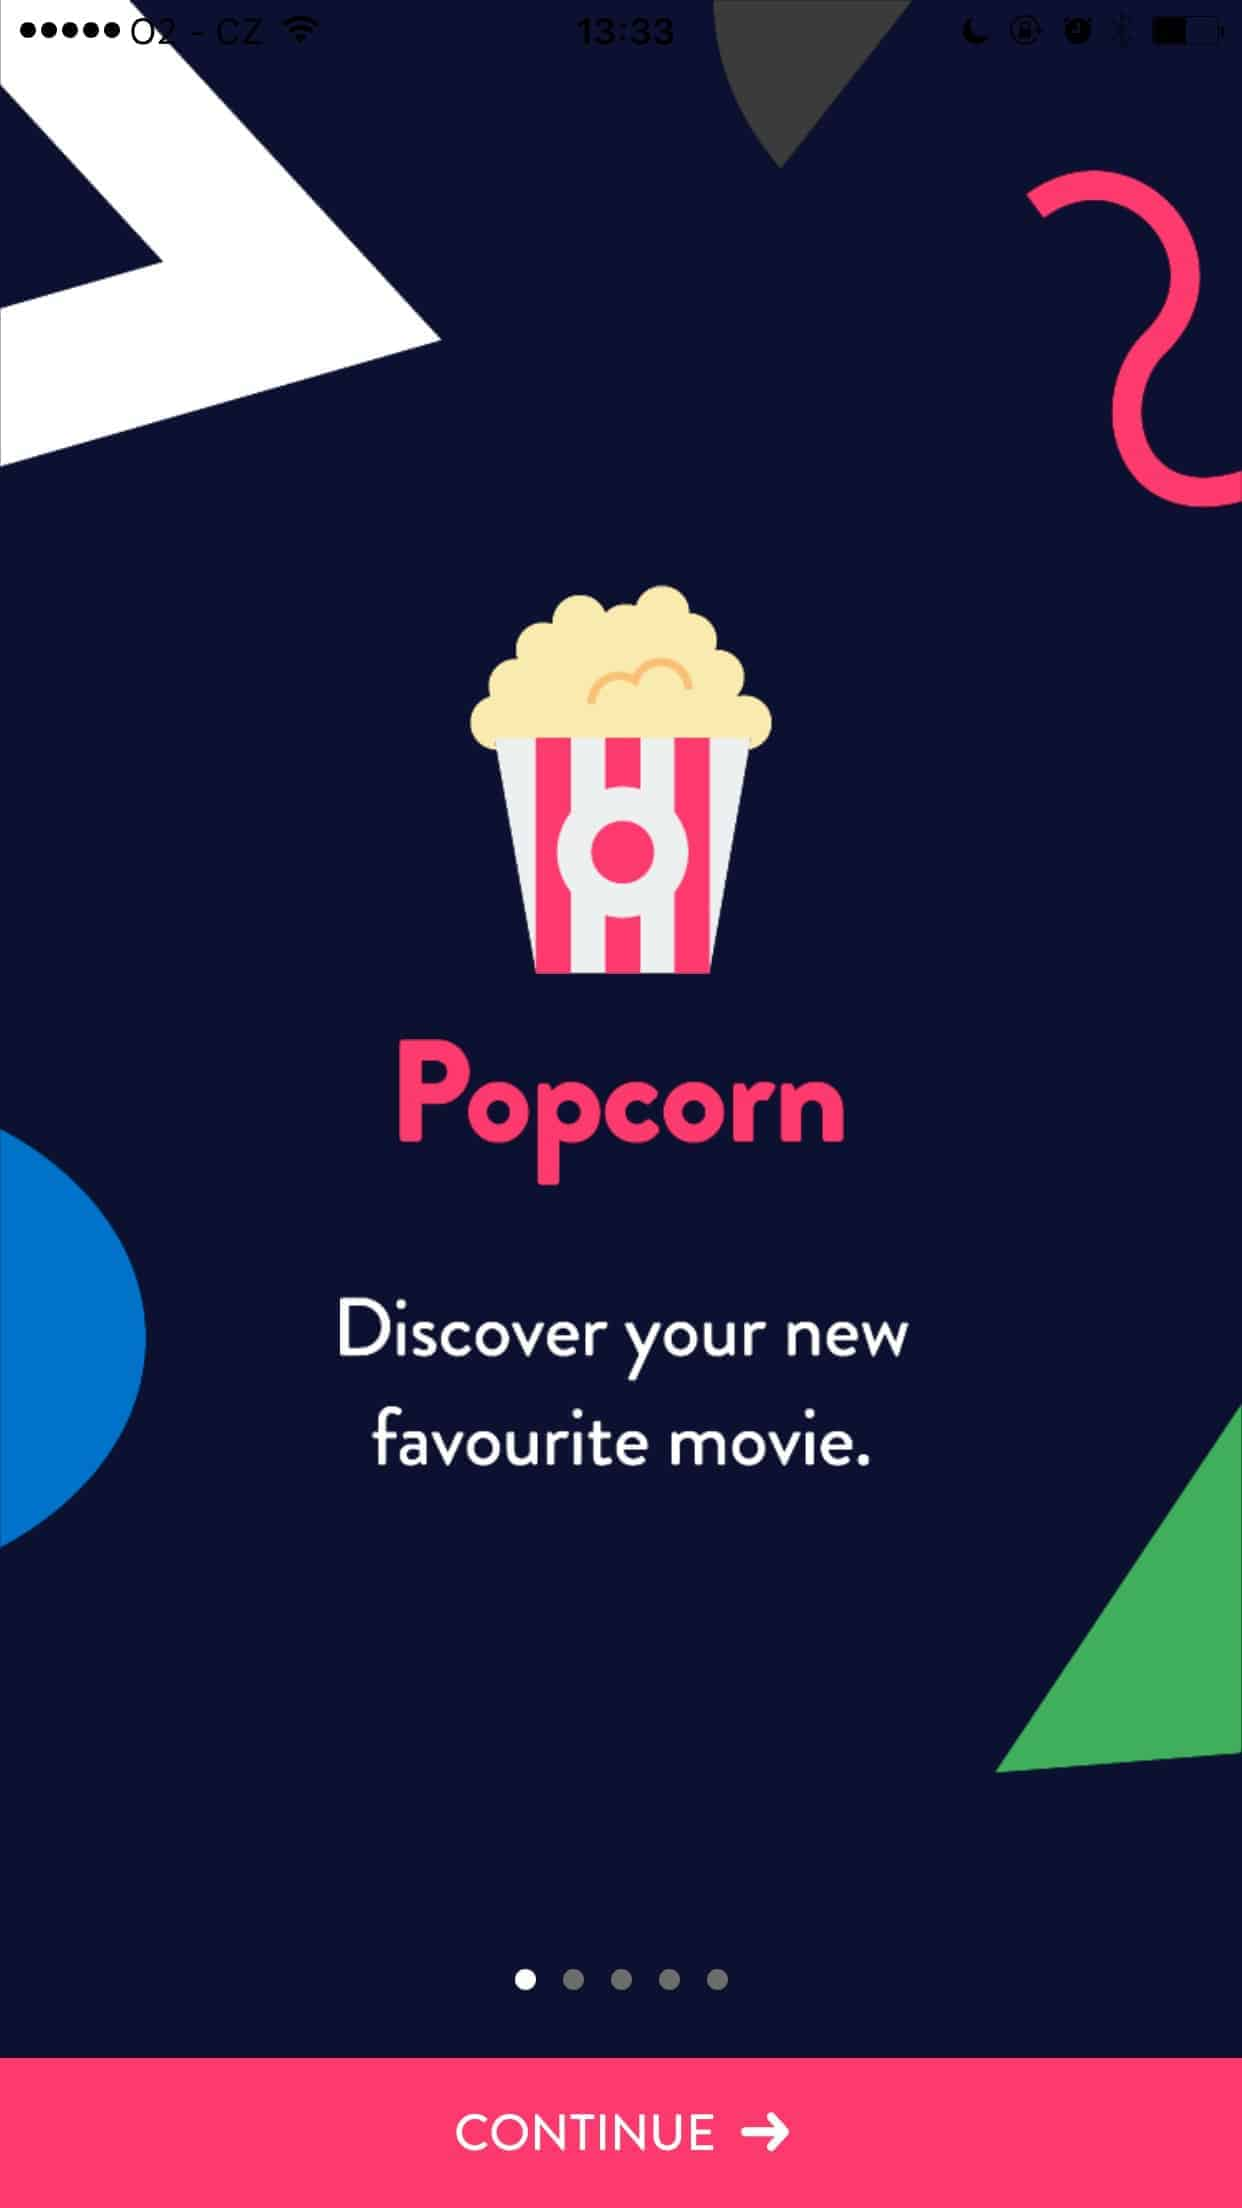 Walkthrough on iOS by Popcorn